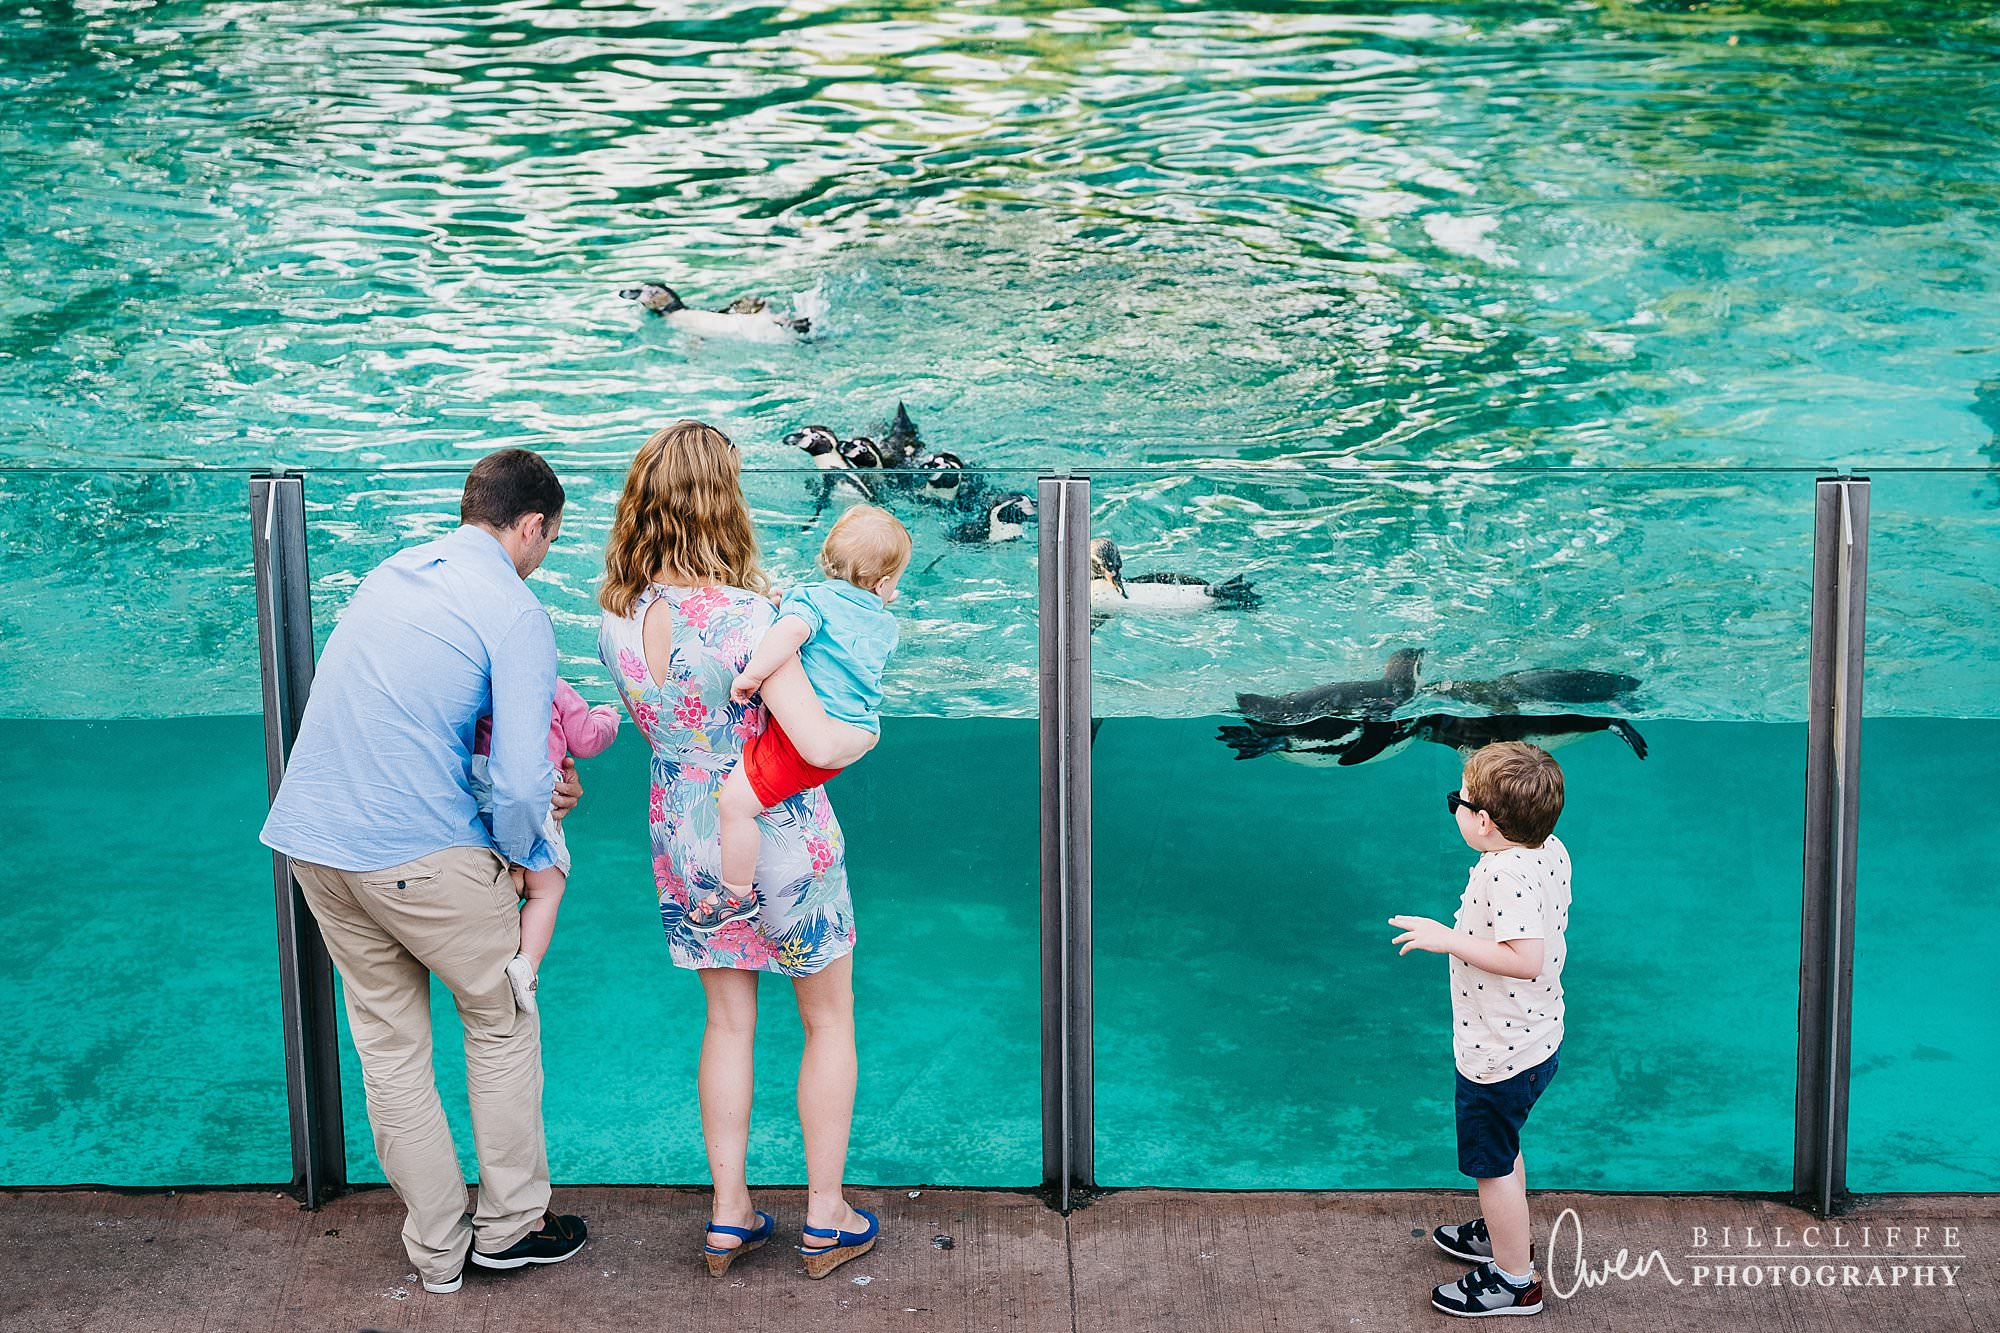 london event photographer zsl london zoo 1706 017 - A Party with the Penguins at London Zoo